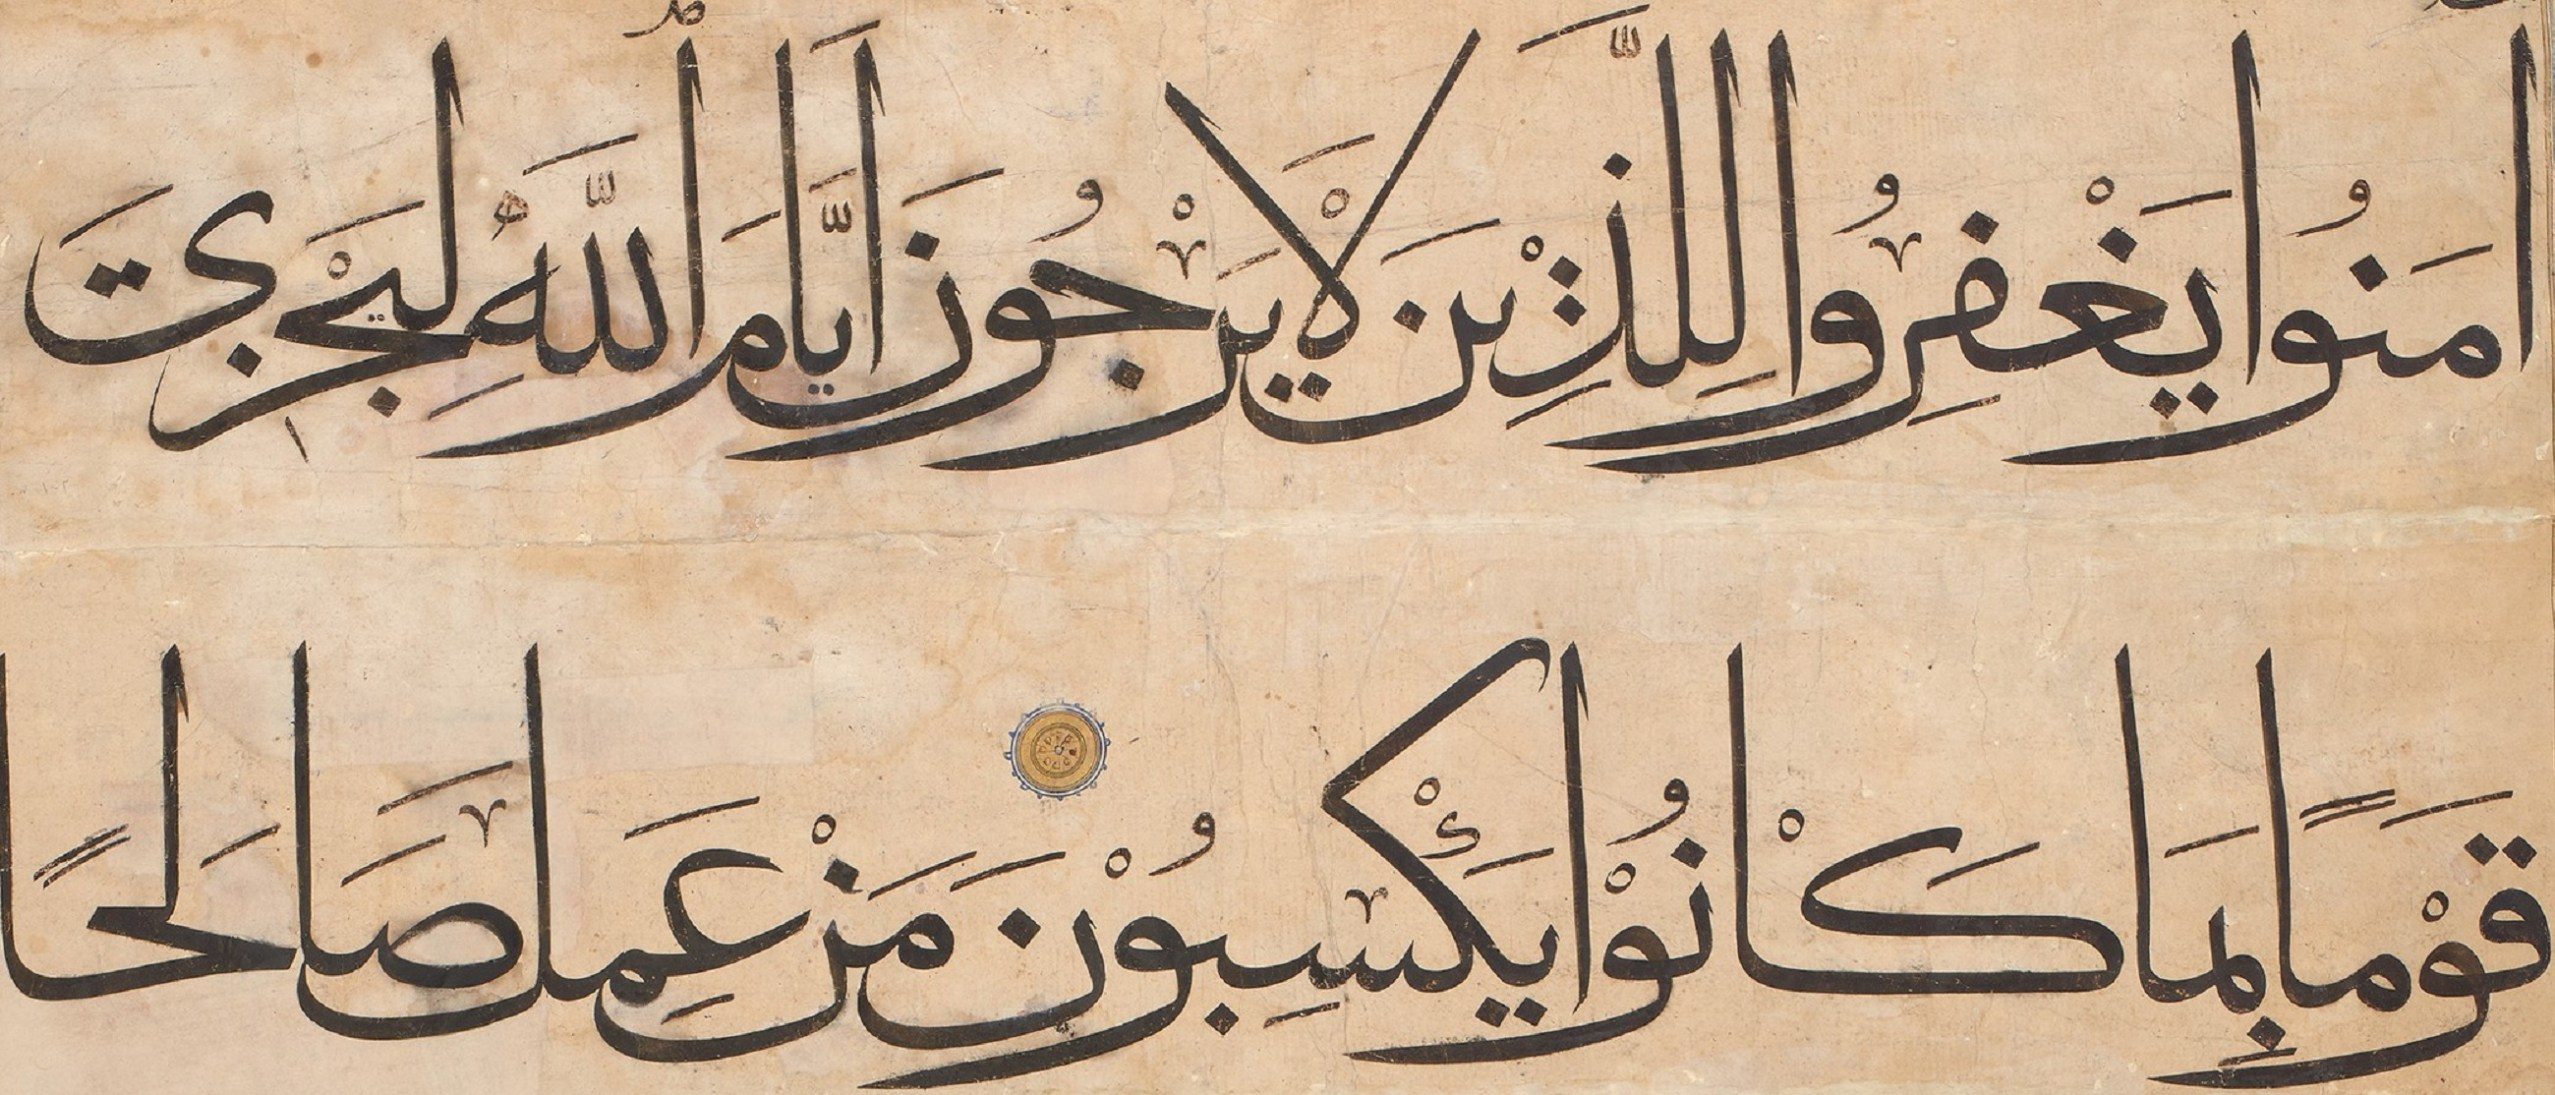 Detail image, Folio from a Qur'an; sura 45:9–13; attributed to Omar Aqta'; historic Iran, present-day Uzbekistan, probably Samarqand, Timurid period, ca. 1400; ink, color, and gold on paper; lent by the Art and History Collection, Arthur M. Sackler Gallery, LTS1995.2.16.1